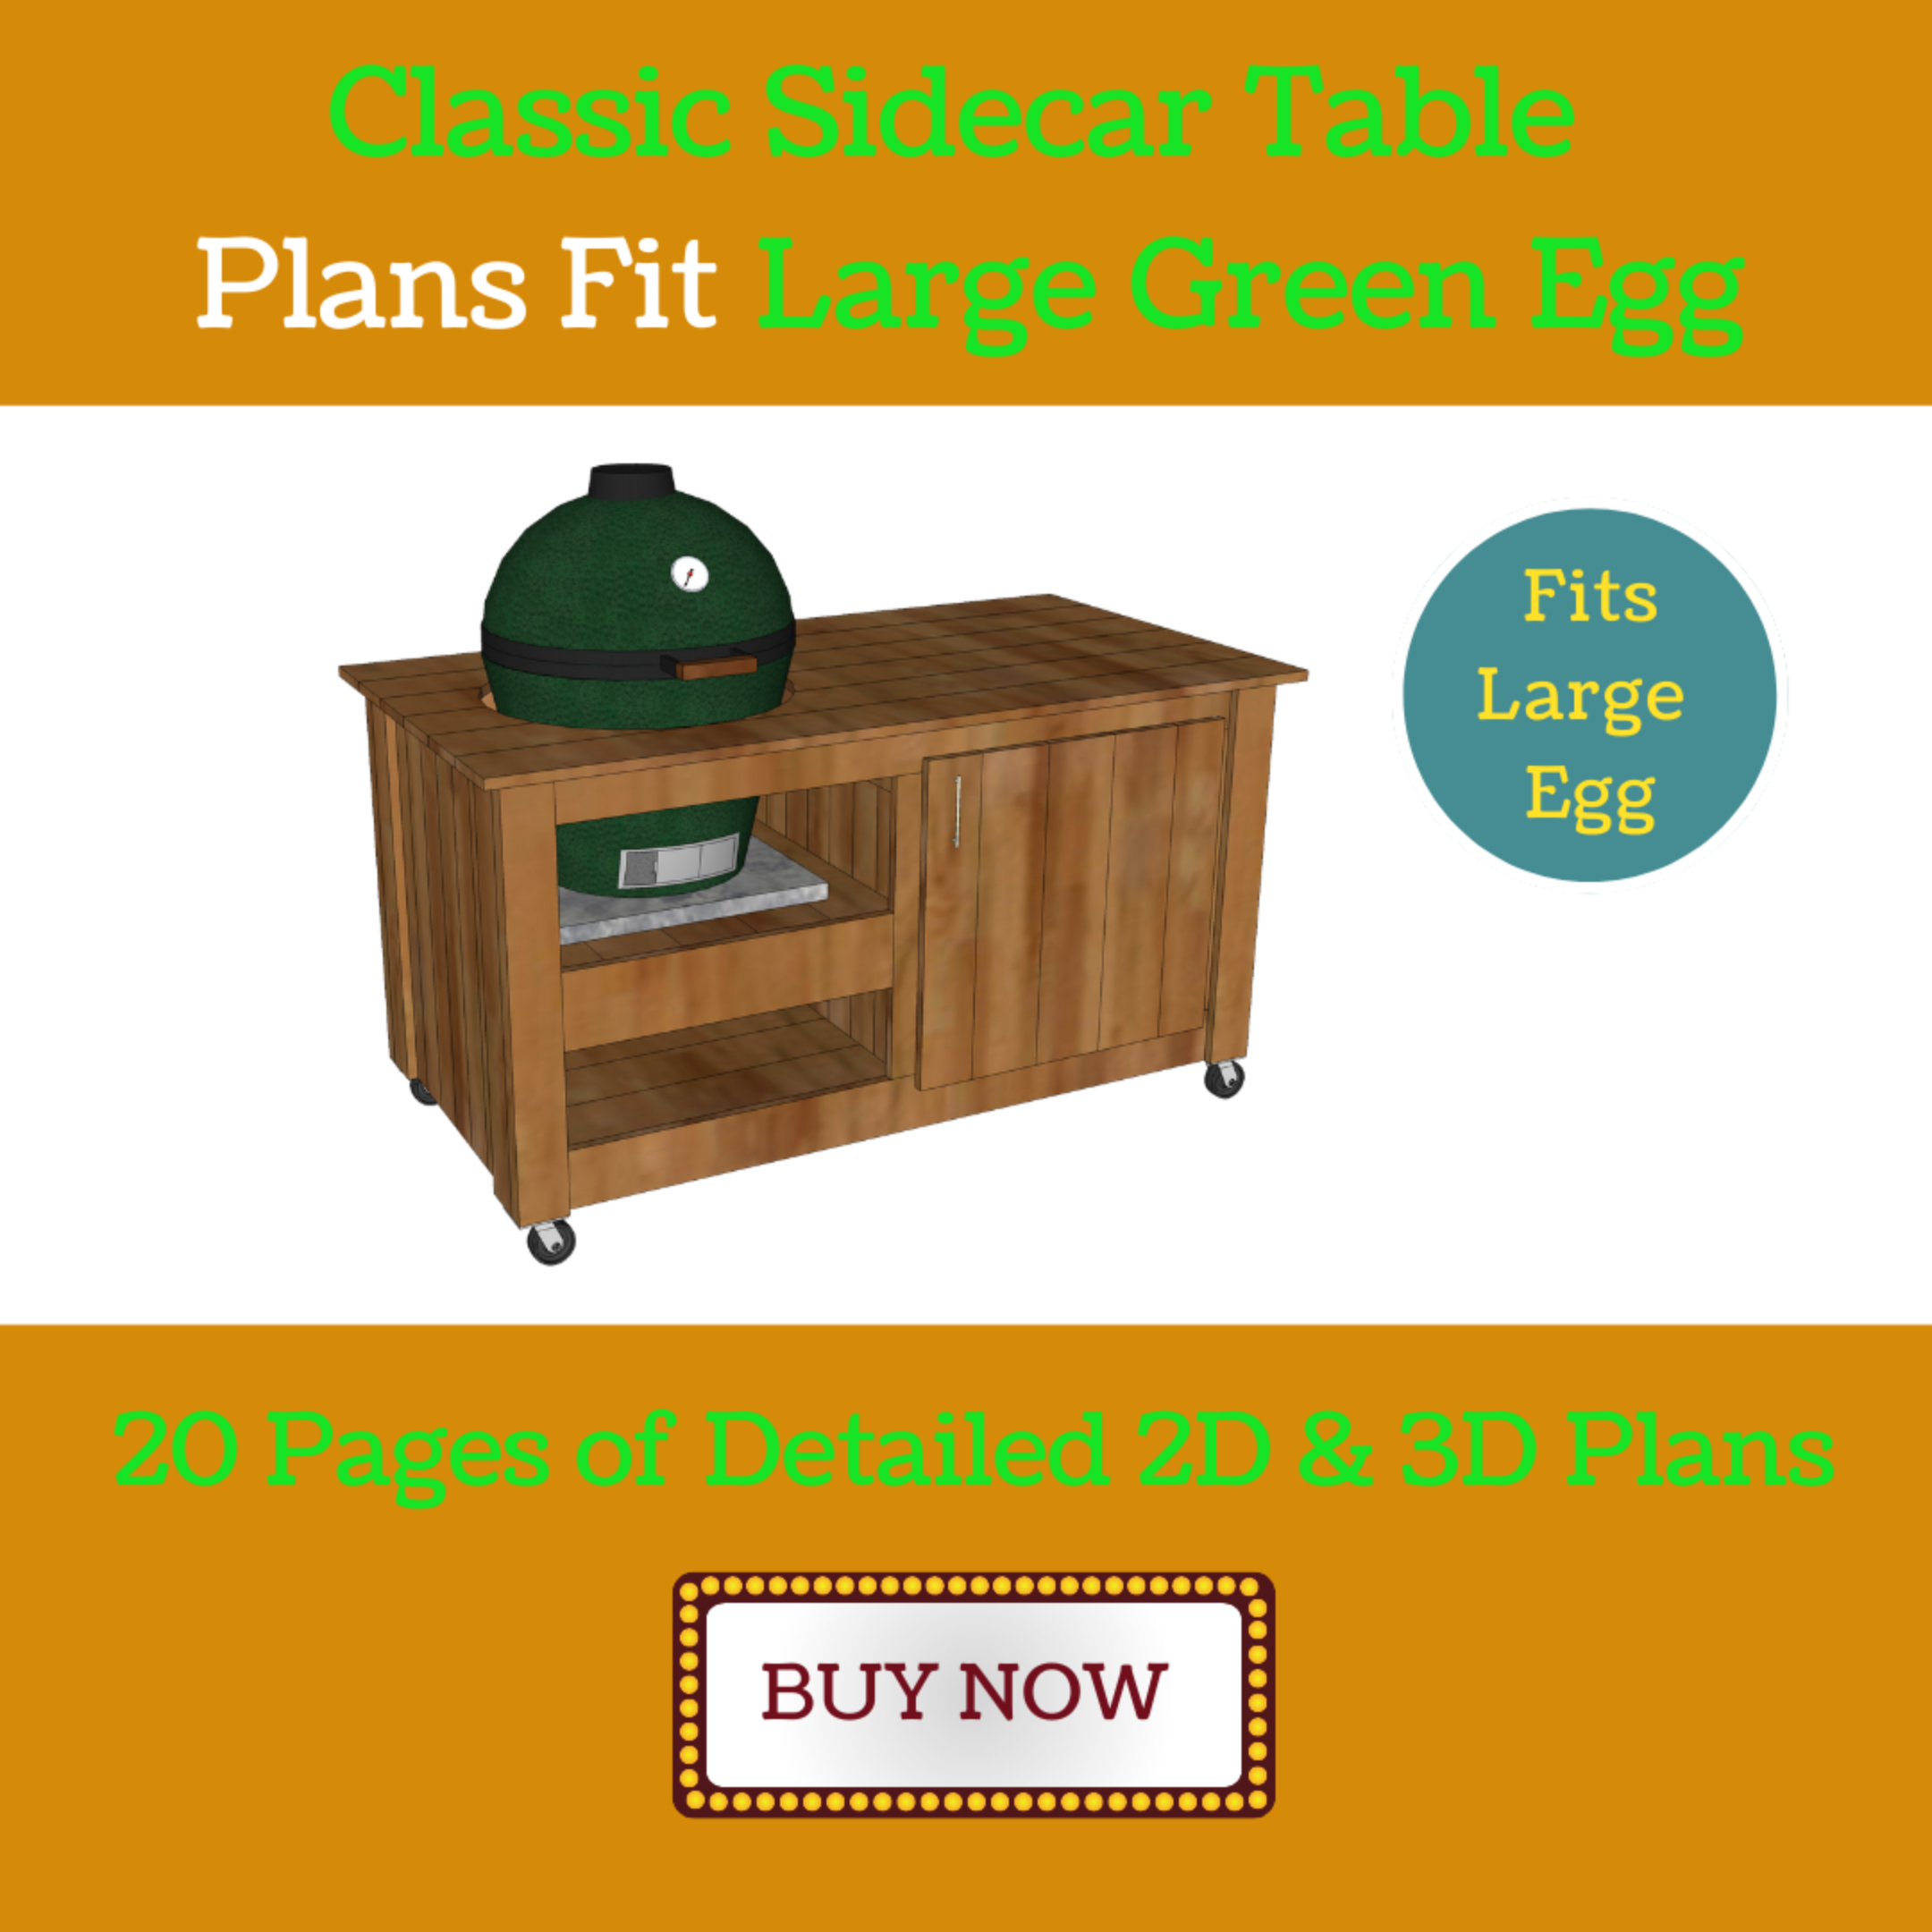 Sidecar Grill Table Plans for Large Green Egg